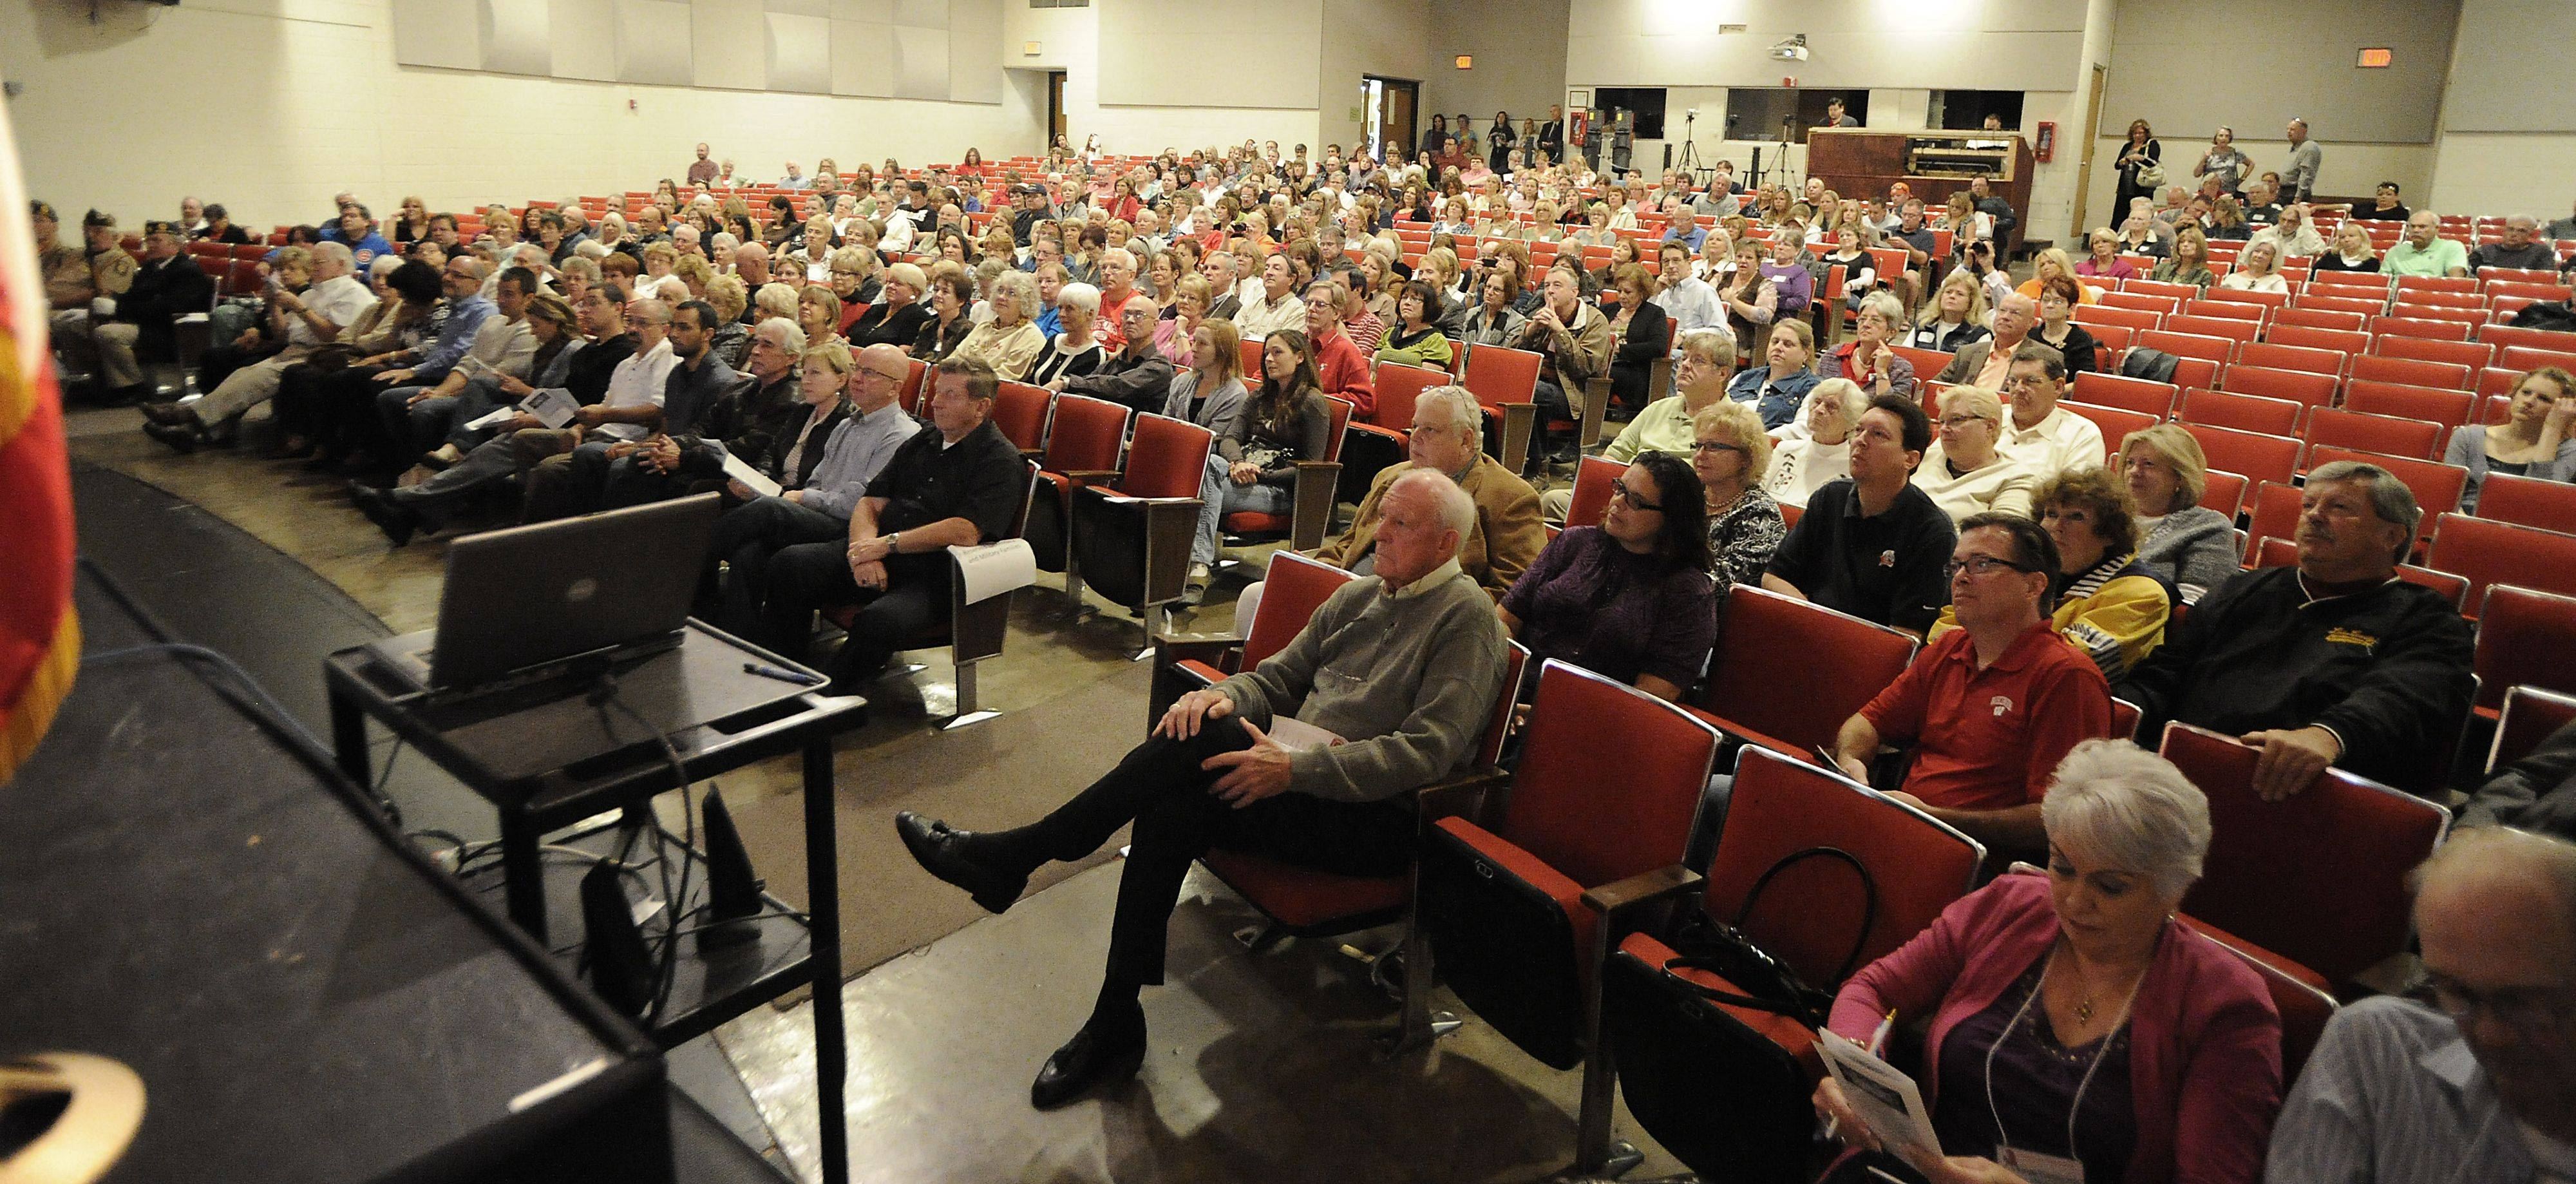 The rededication ceremony at Mundelein High School auditorium was packed with former students who came back for the 50th anniversary celebration on Saturday.